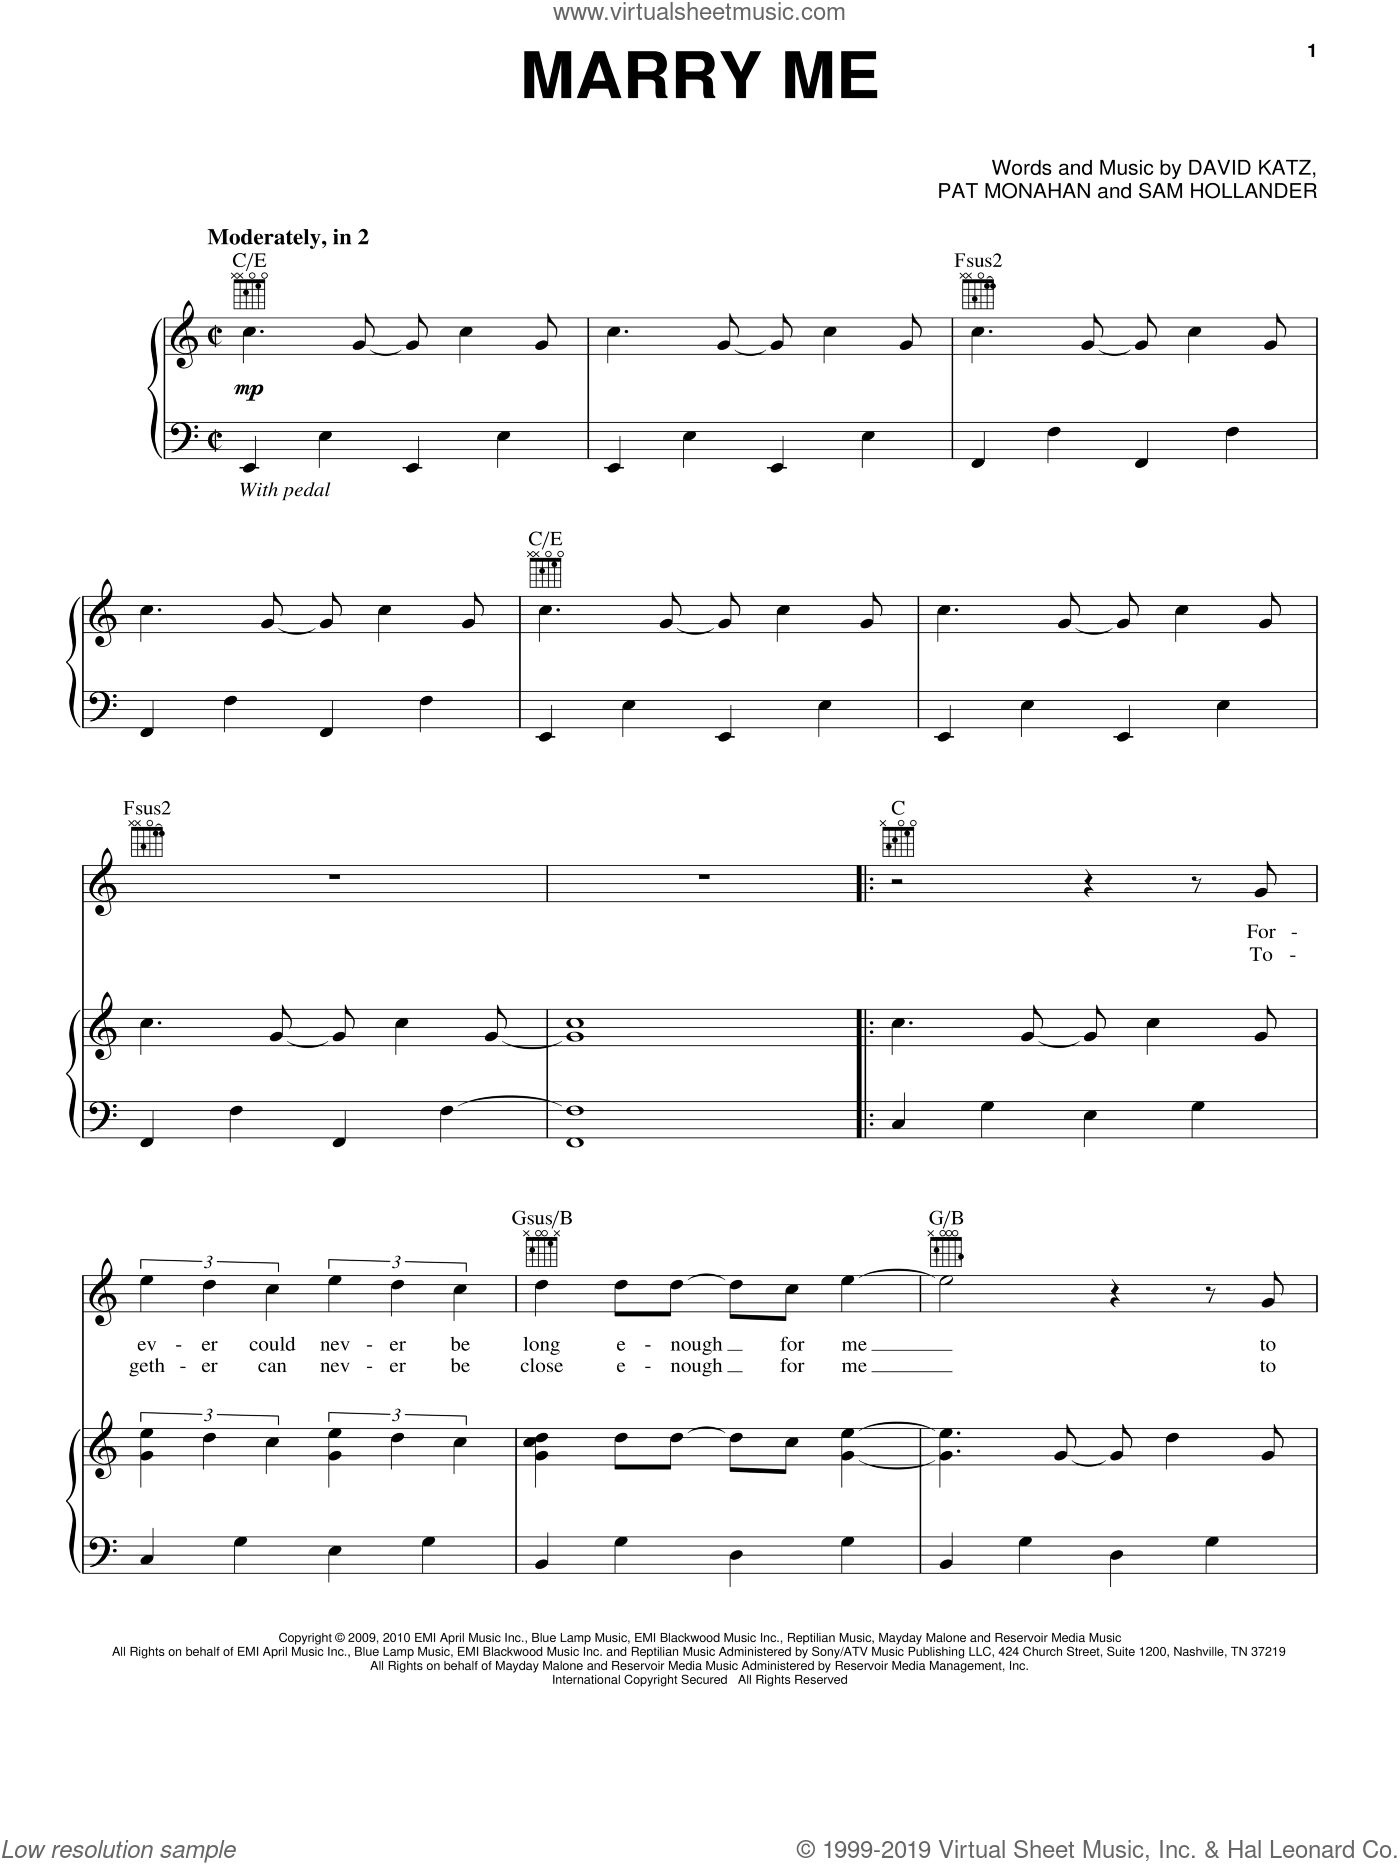 Marry Me sheet music for voice, piano or guitar by Pat Monahan